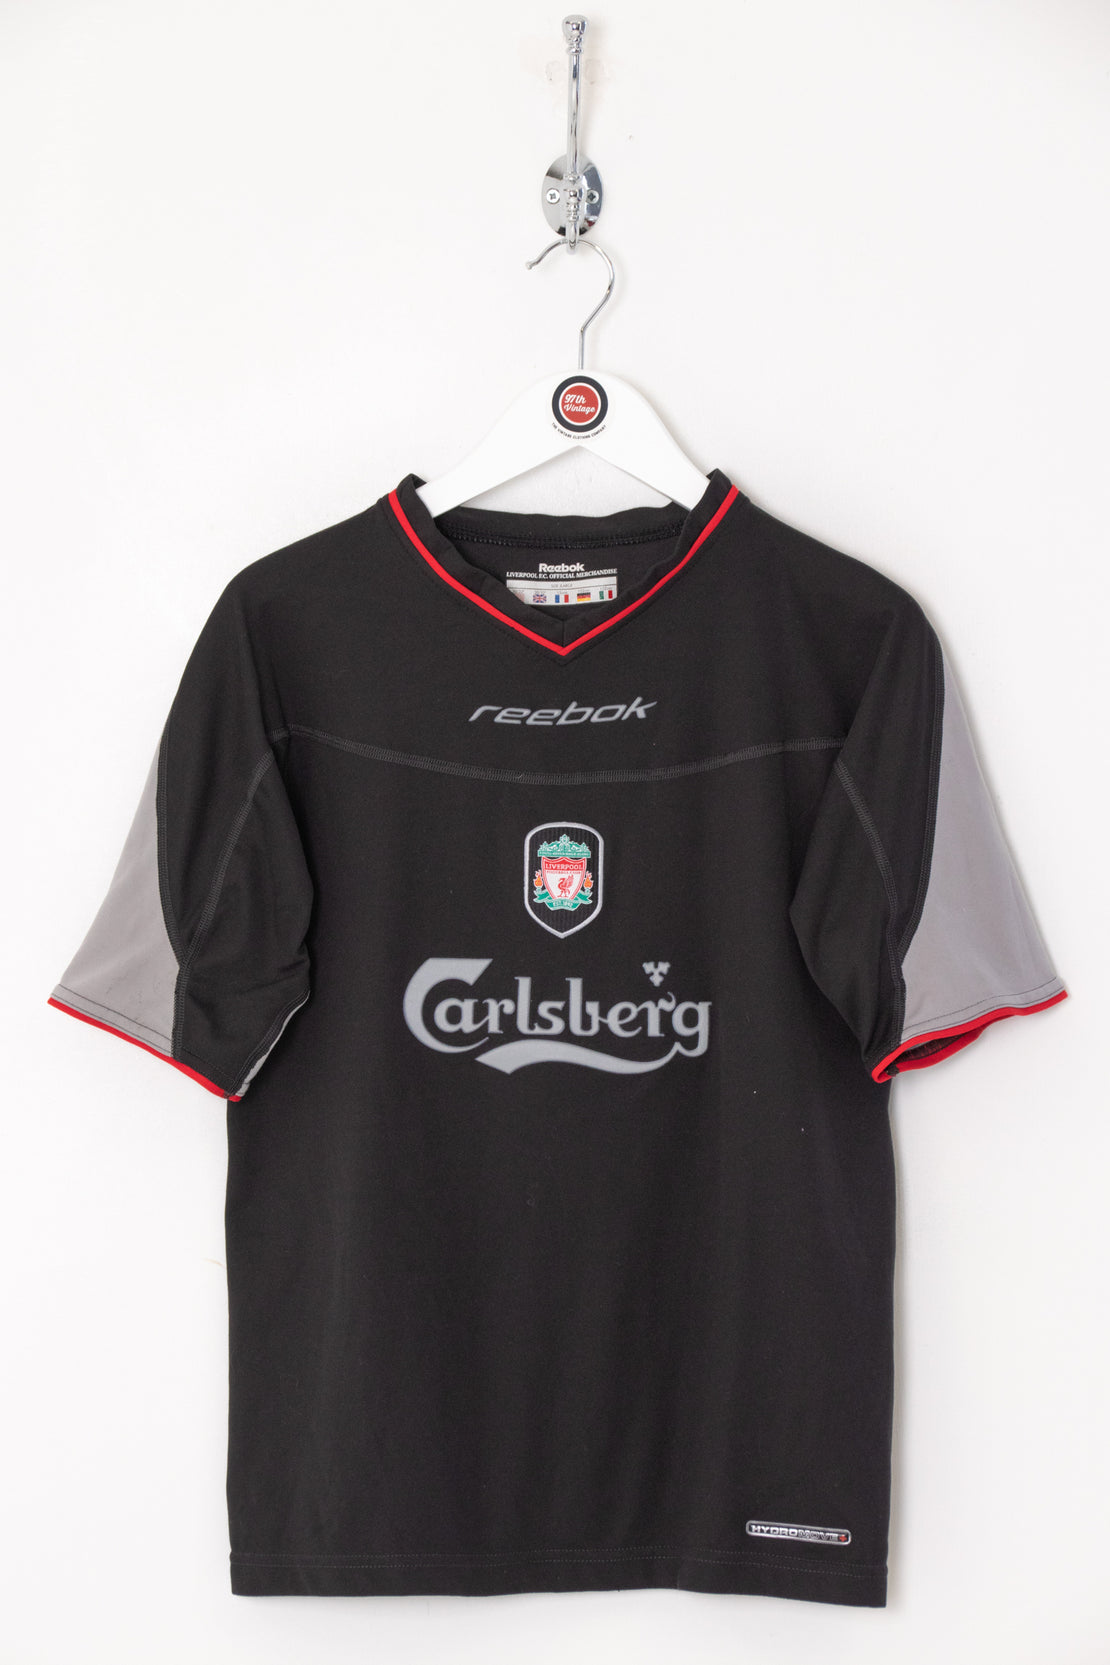 2002/03 Kids Liverpool Football Shirt (Age 12)